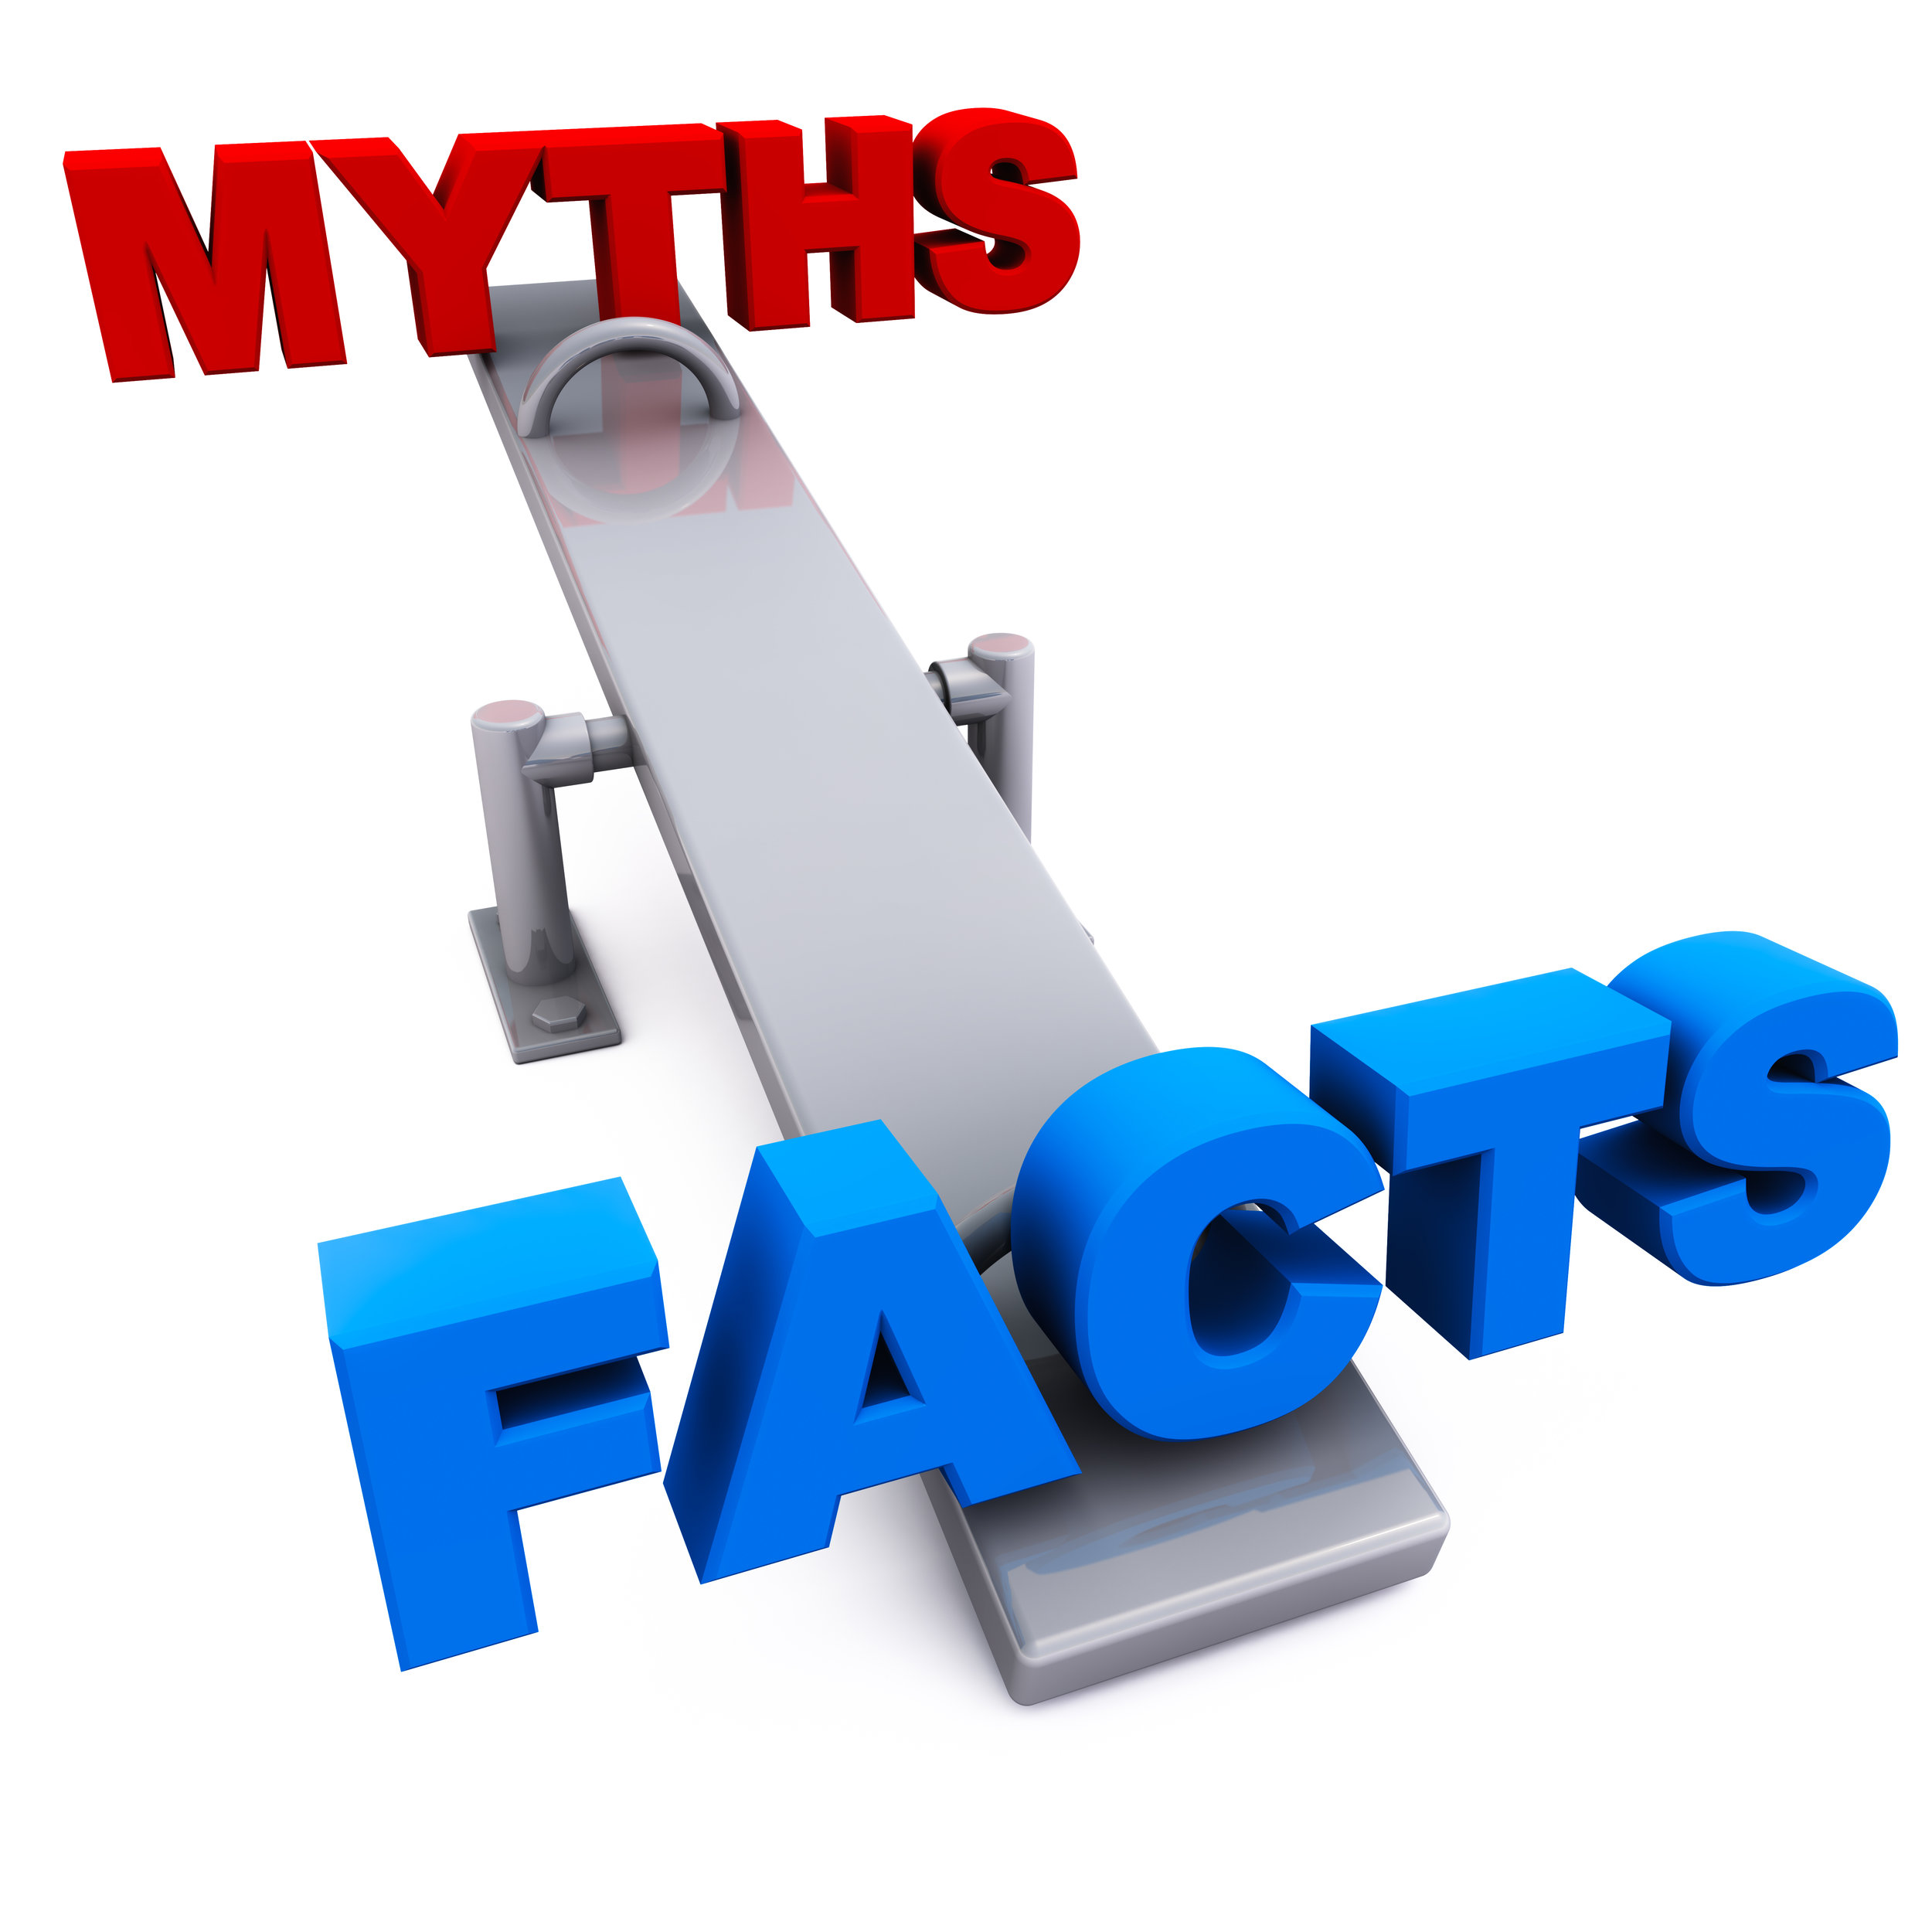 Myths vserus facts.jpg